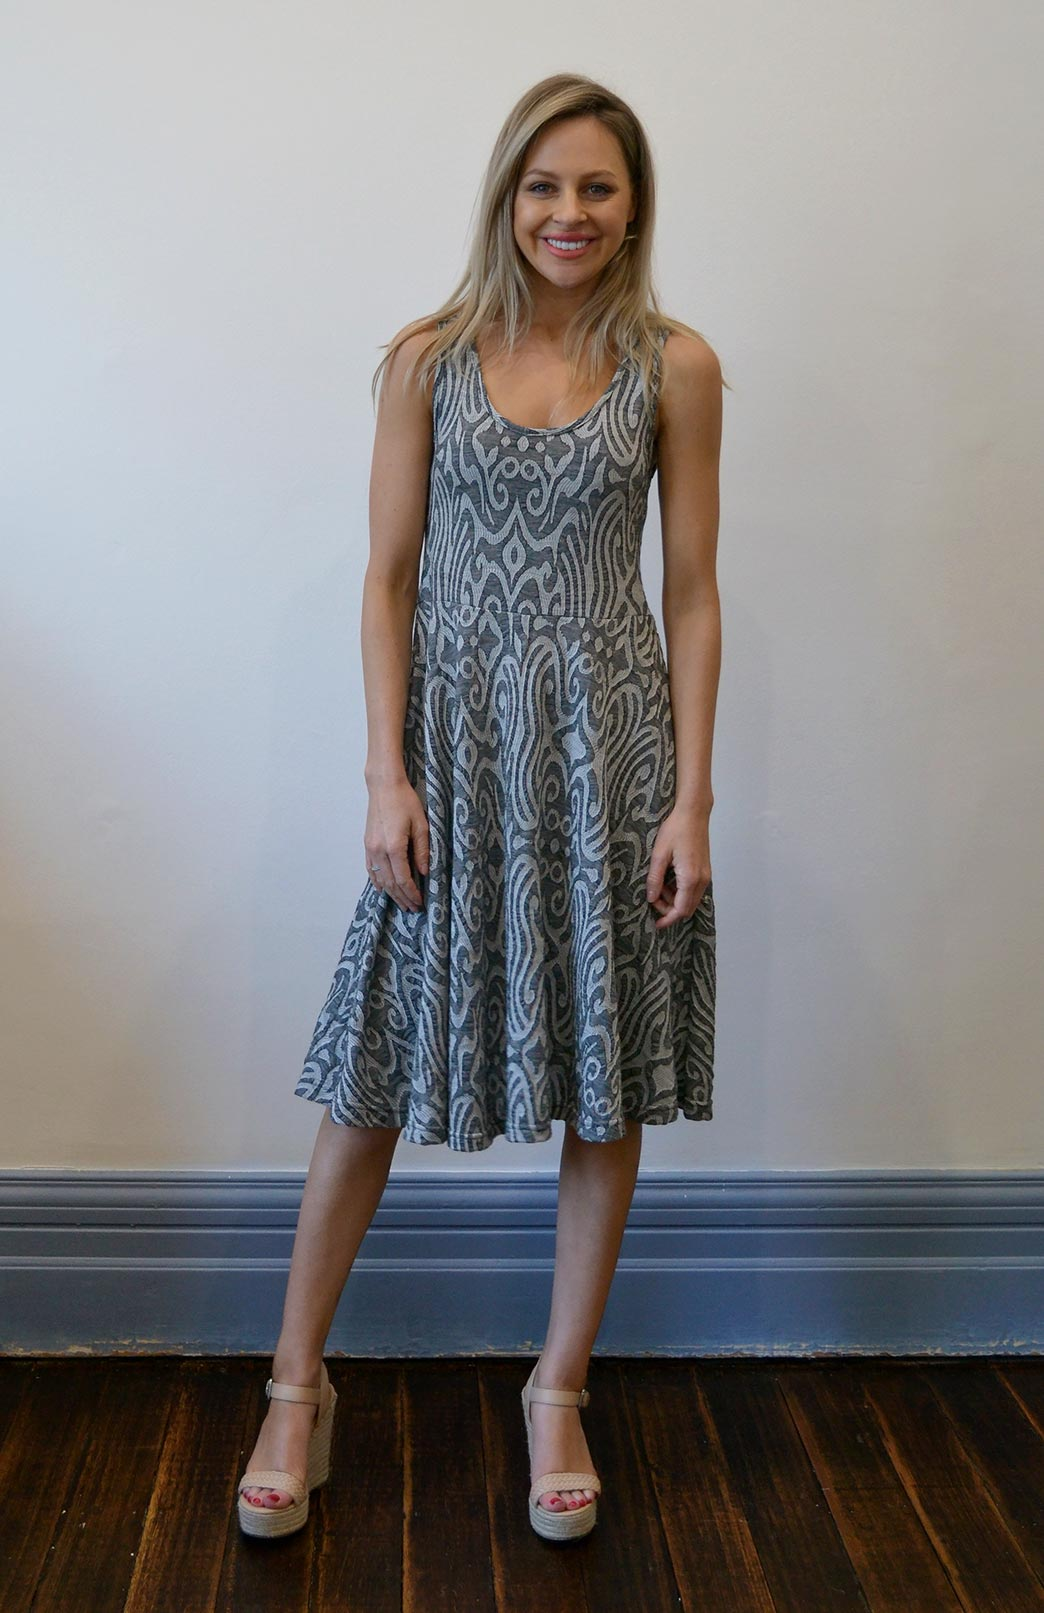 Sleeveless Jackie Dress - Women's Patterned Merino Wool Sleeveless Summer Dress - Smitten Merino Tasmania Australia